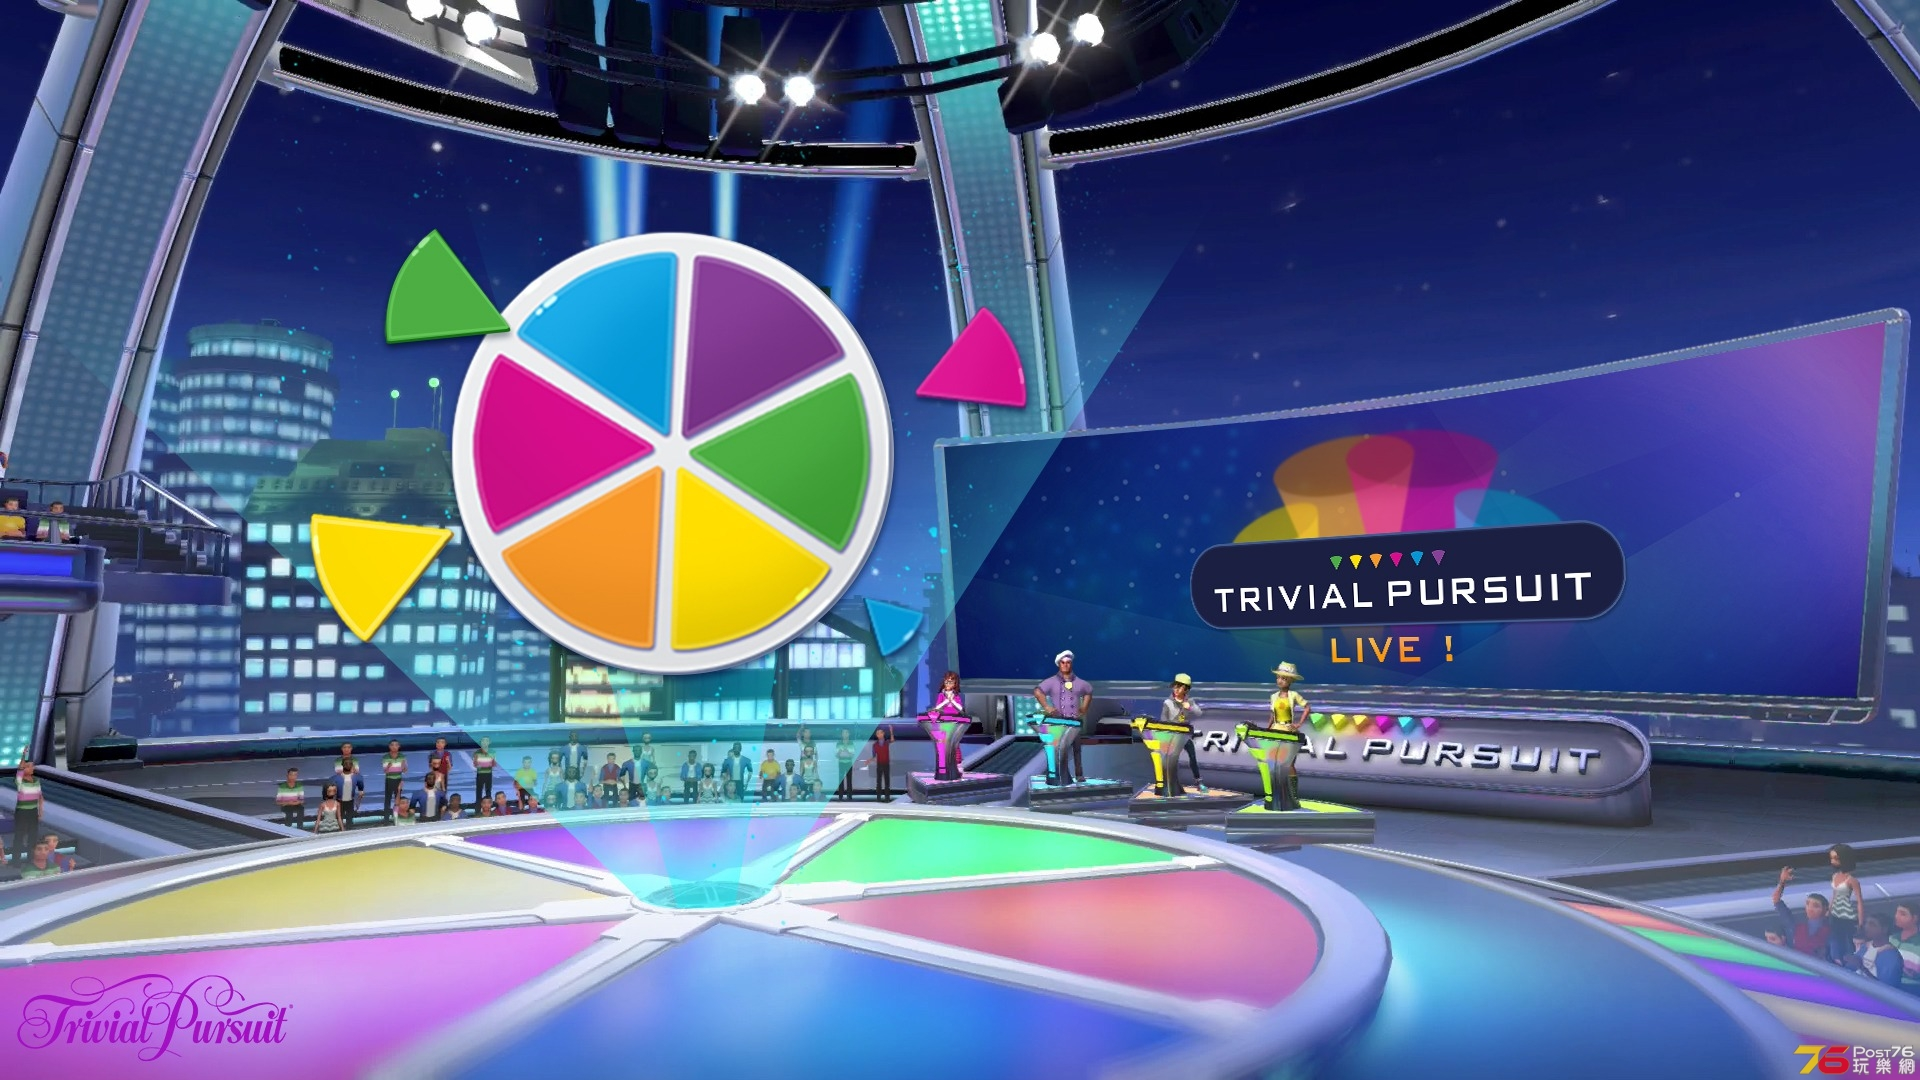 Trivial_Pursuit_Keyart_181030_3pm_CET_1540900641.jpg